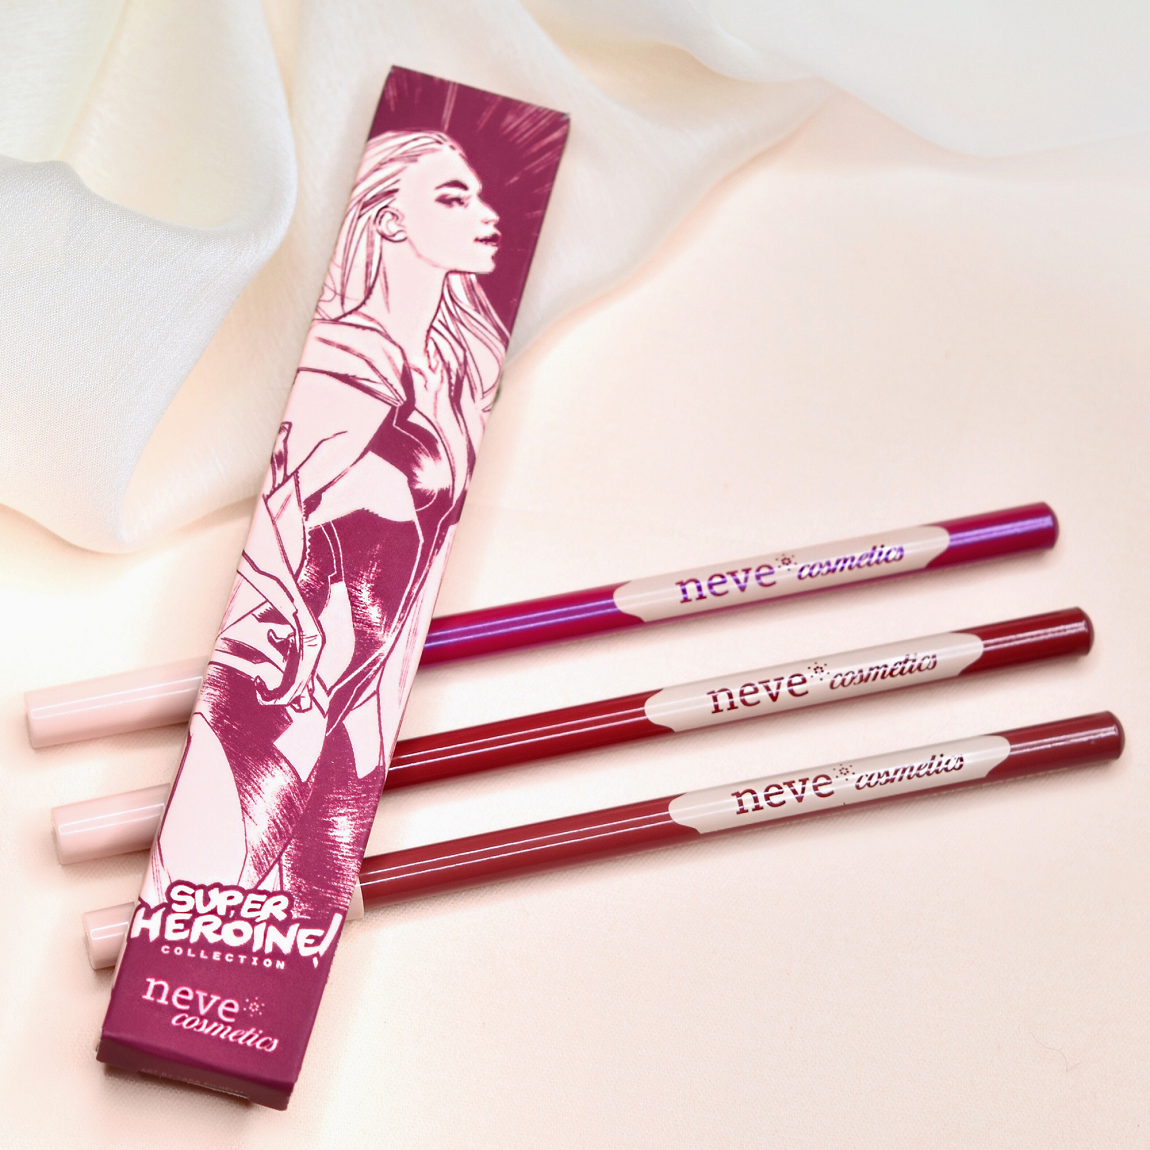 SuperHeroine collection: a collection of Pastel true heroine lips!